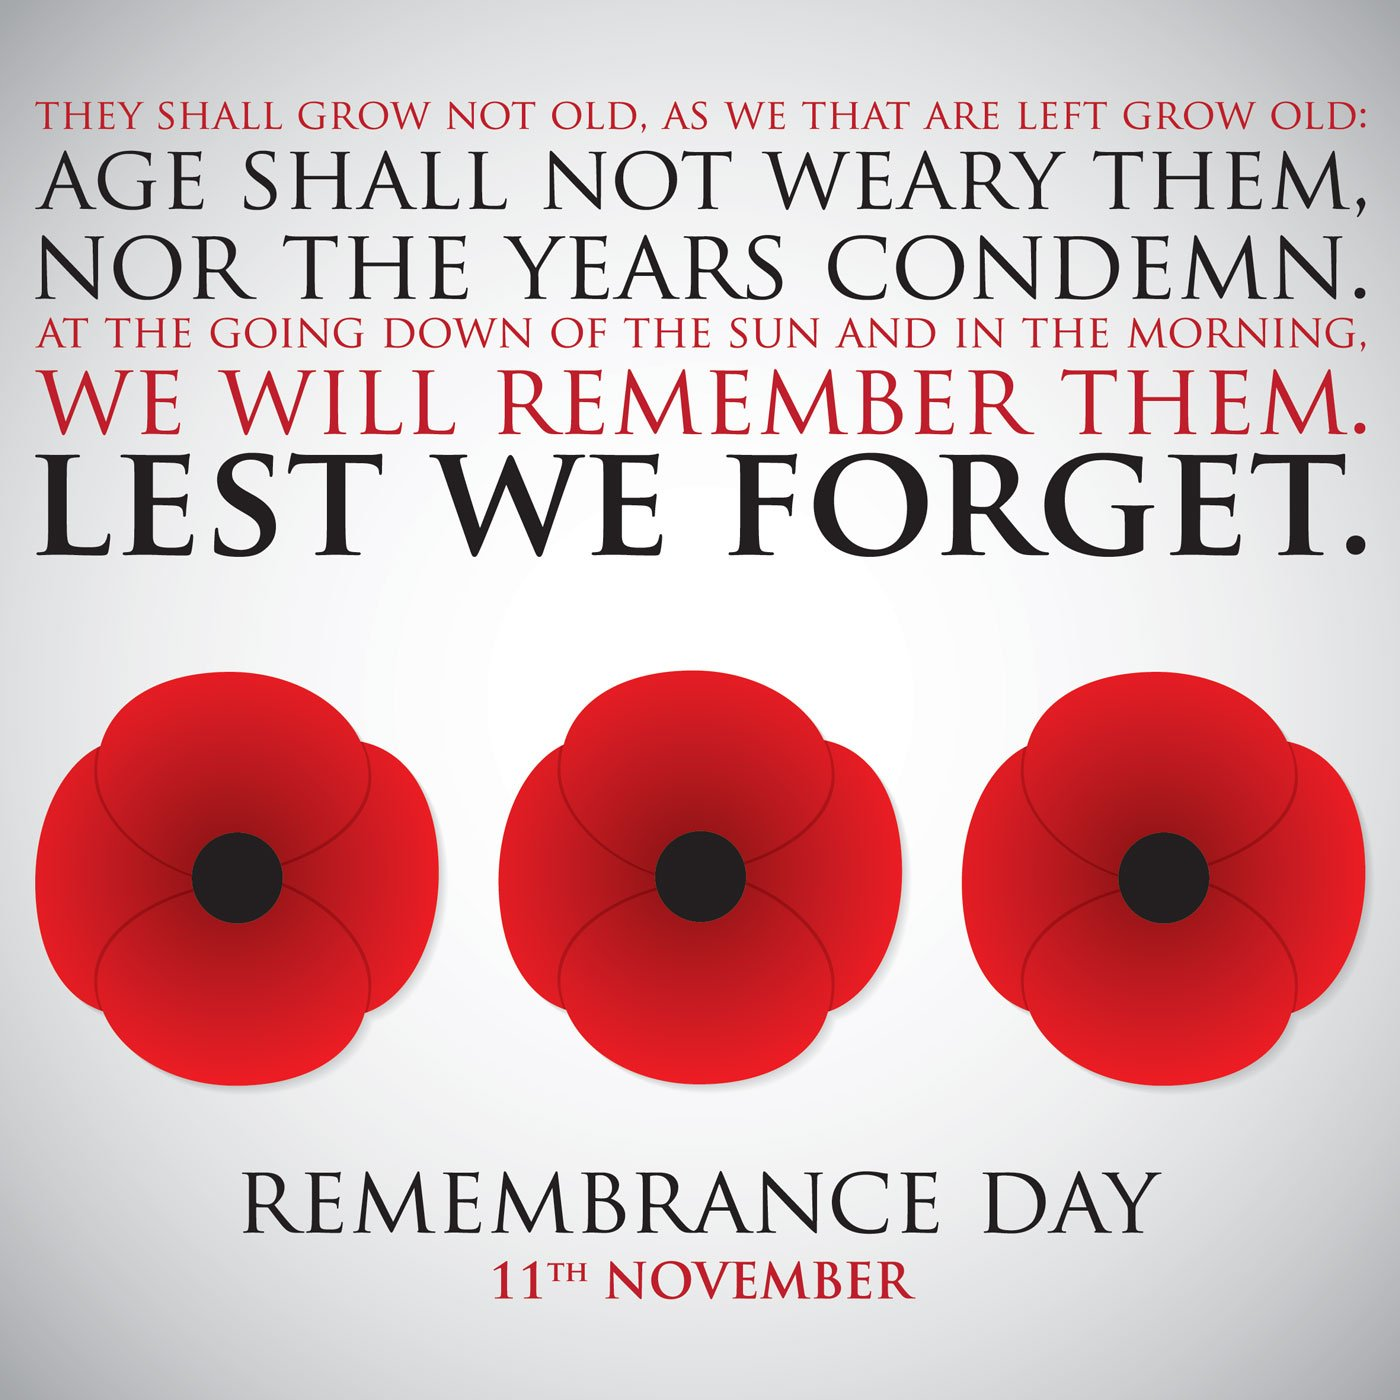 Remembrance day advertisement